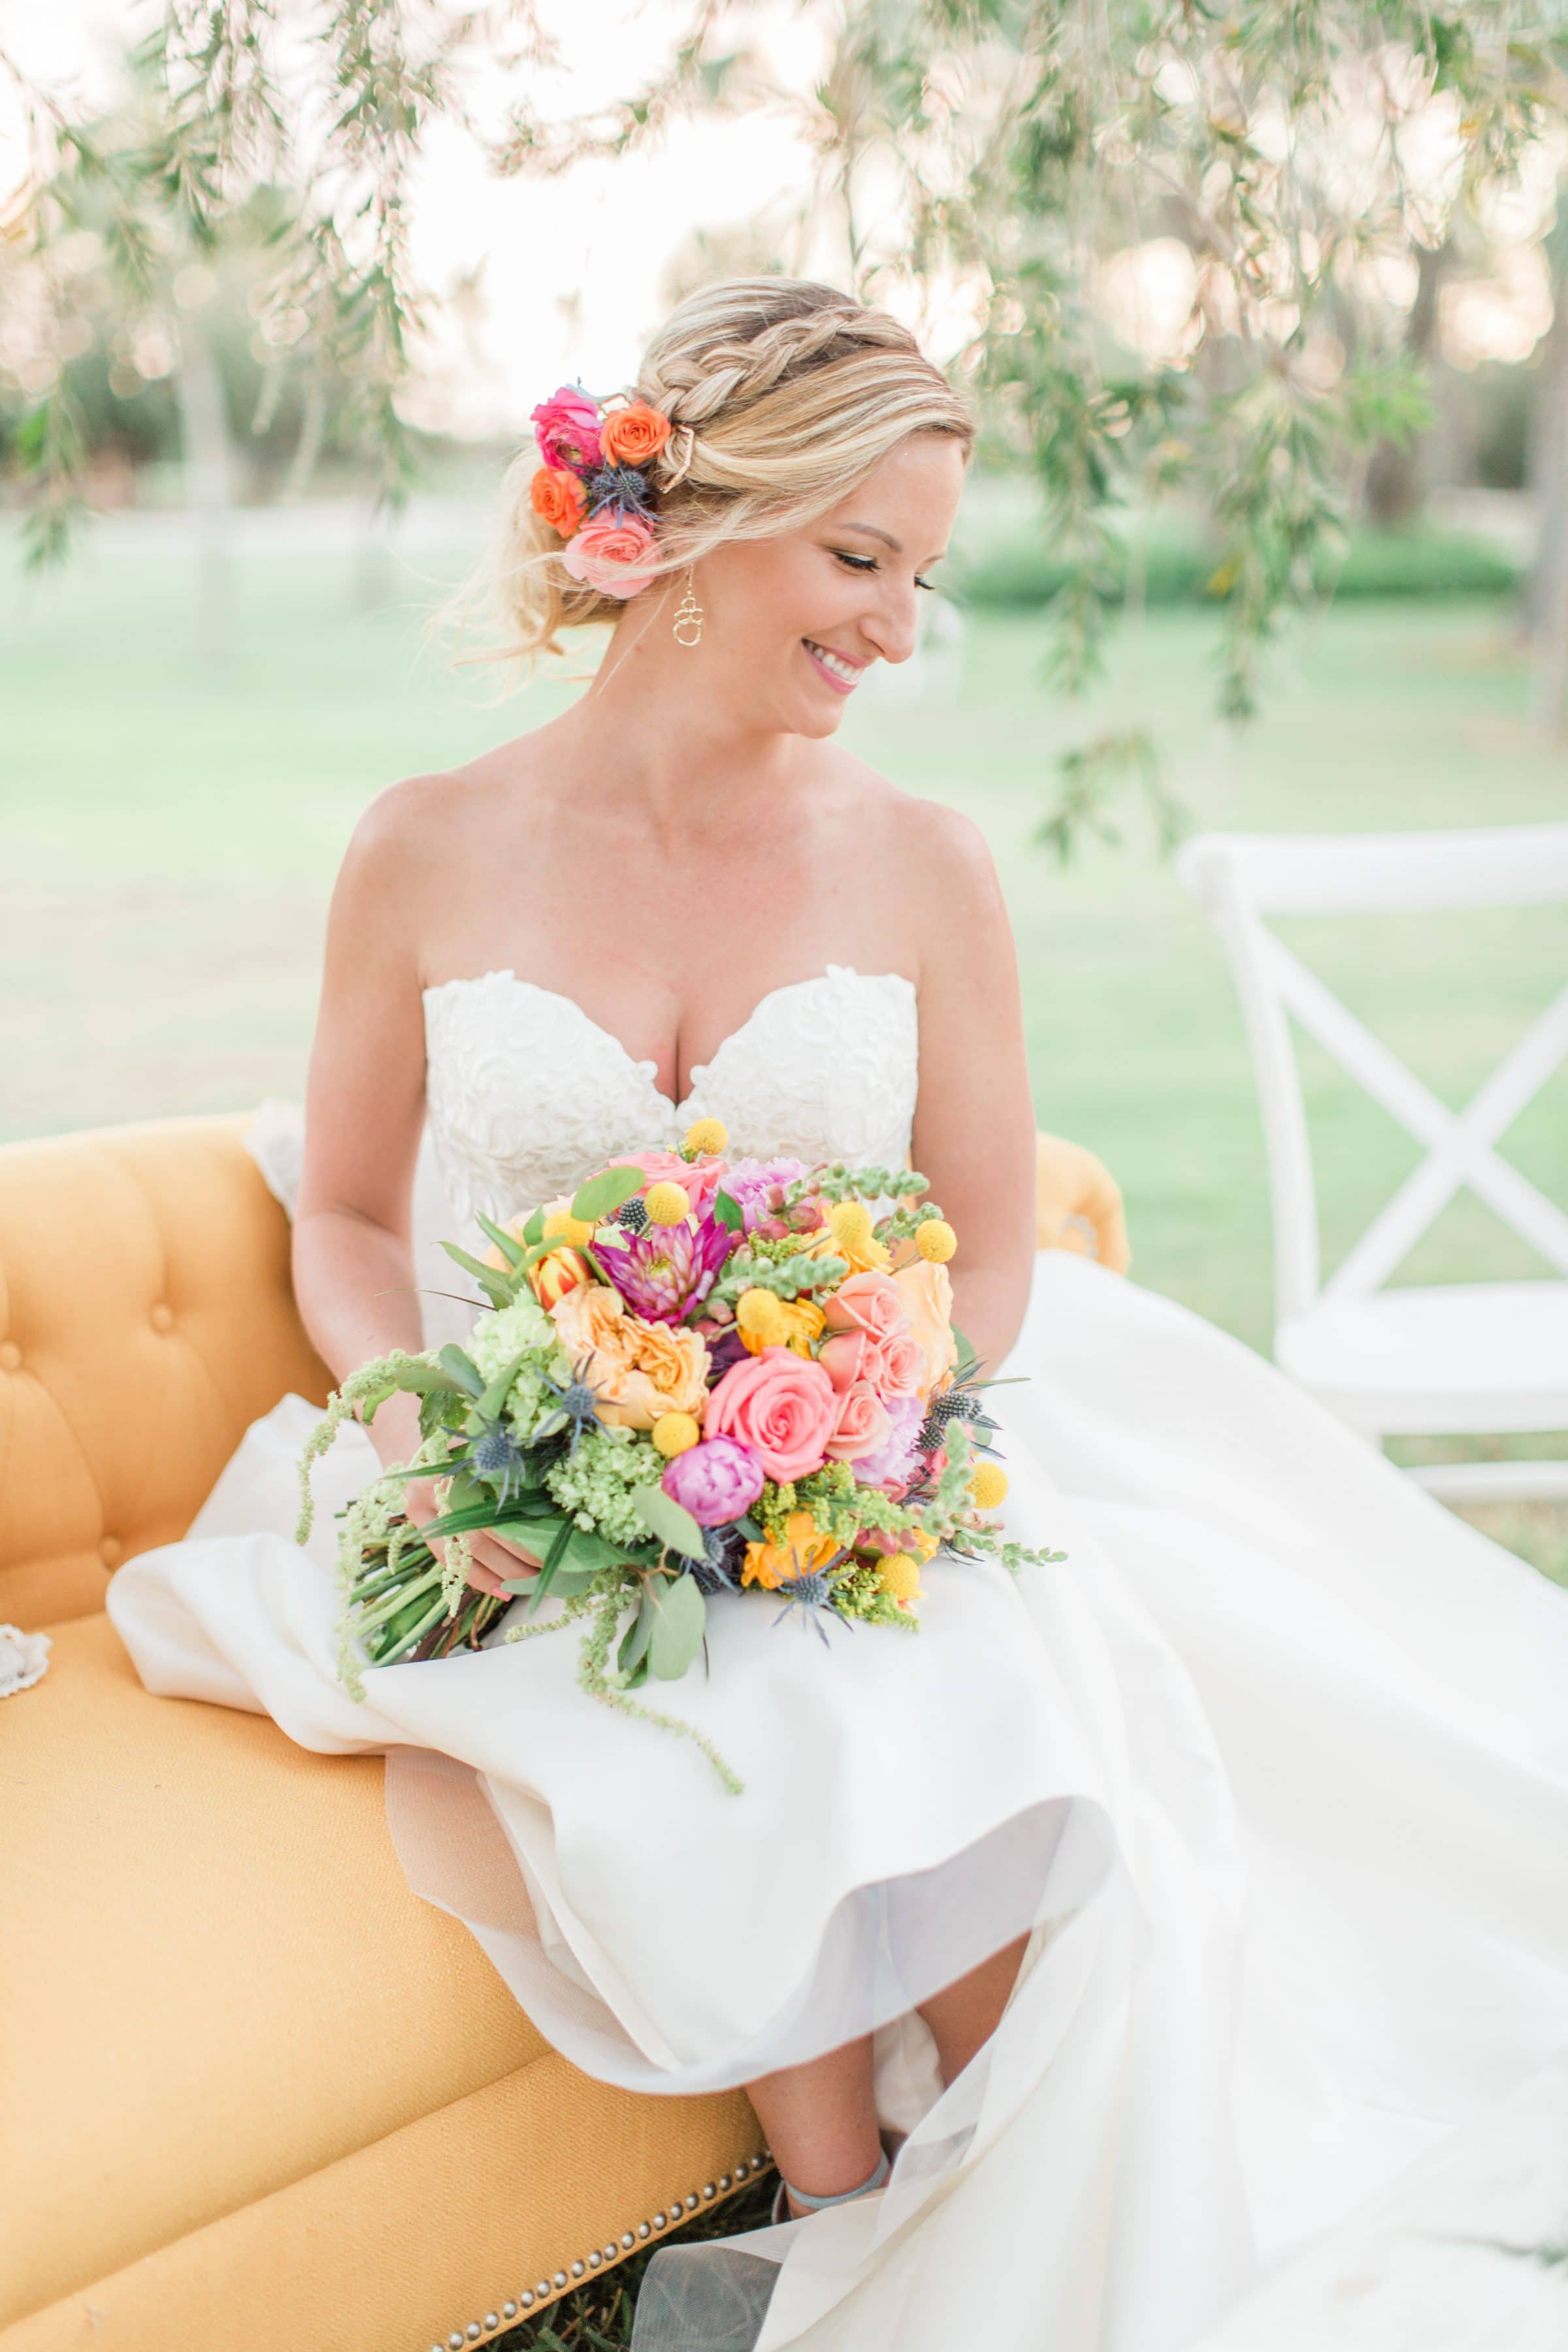 Bride on Couch Holding Sensational Spring Wedding Bouquet